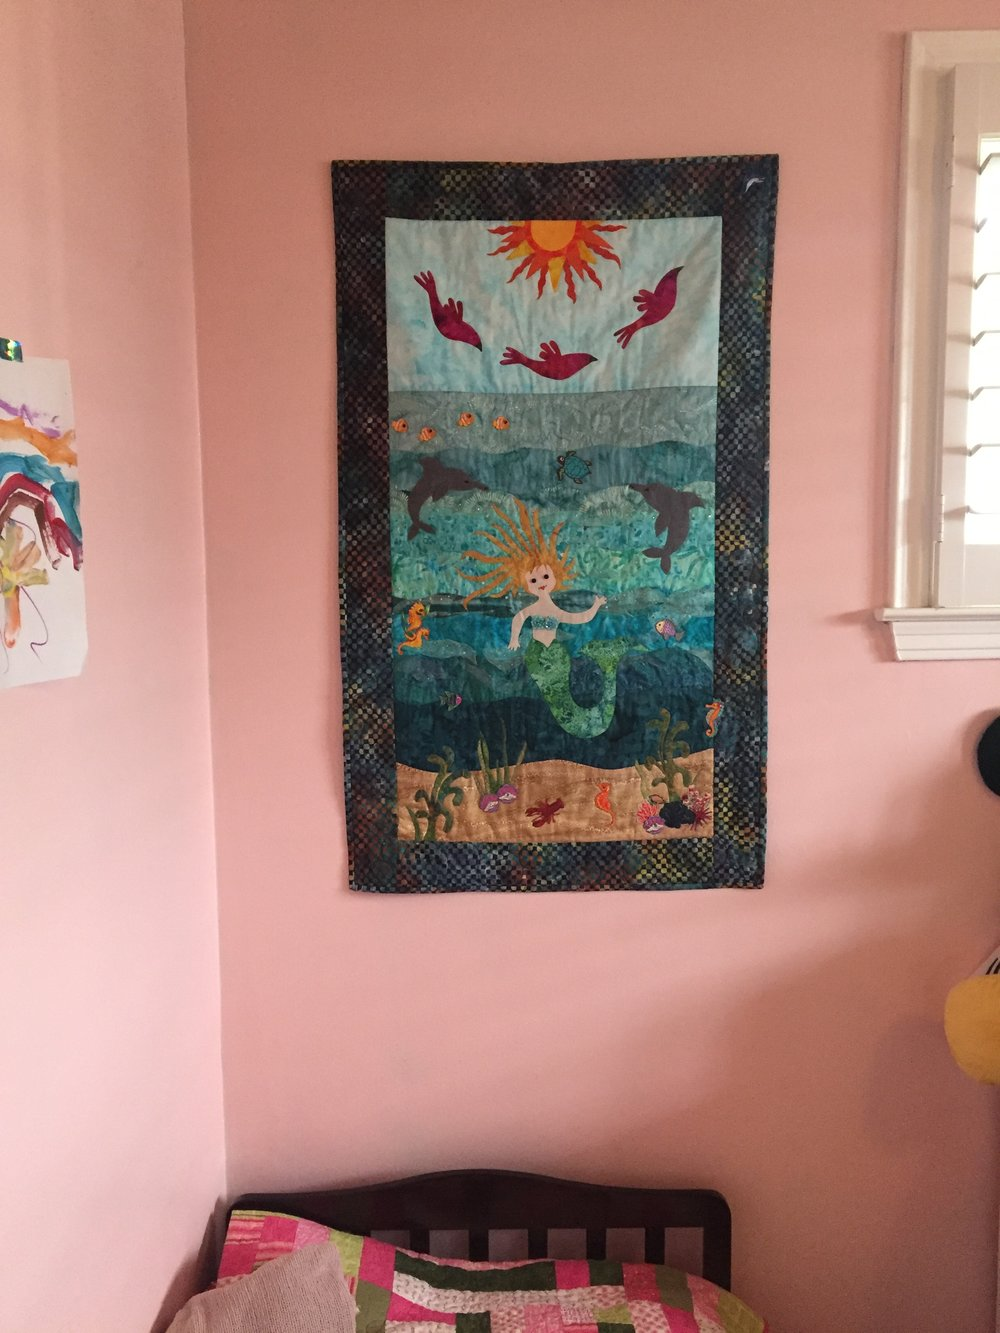 The mermaid wall hanging above the bed was made by my mother-in-law.  She is super talented with quilts.